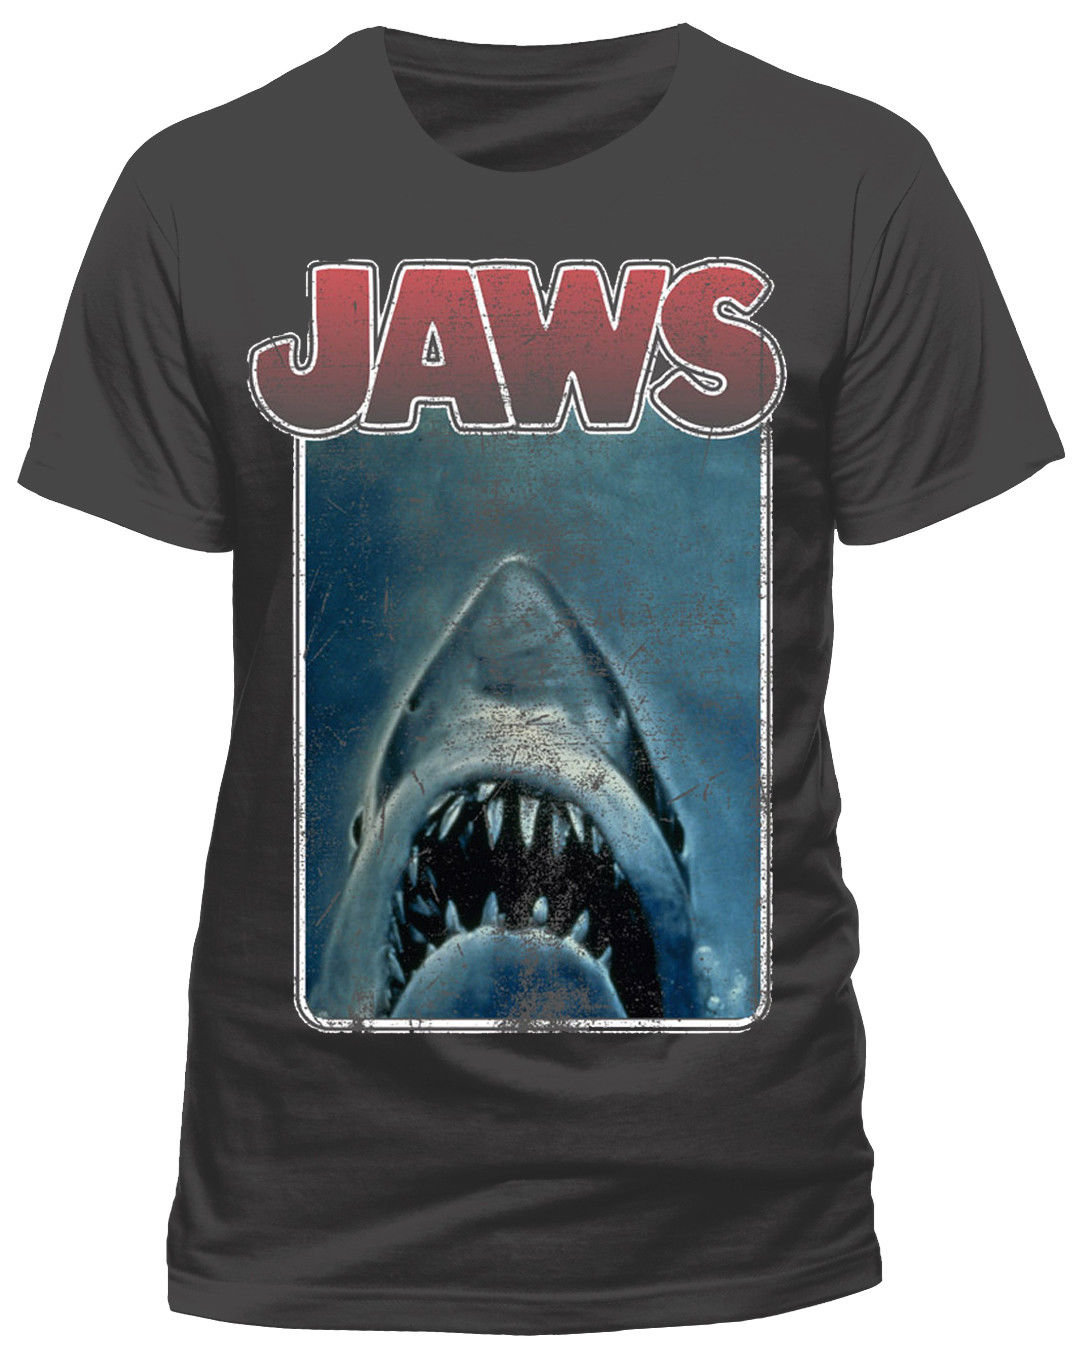 JAWS VINTAGE POSTER T-SHIRT - NUOVO E ORIGINALE